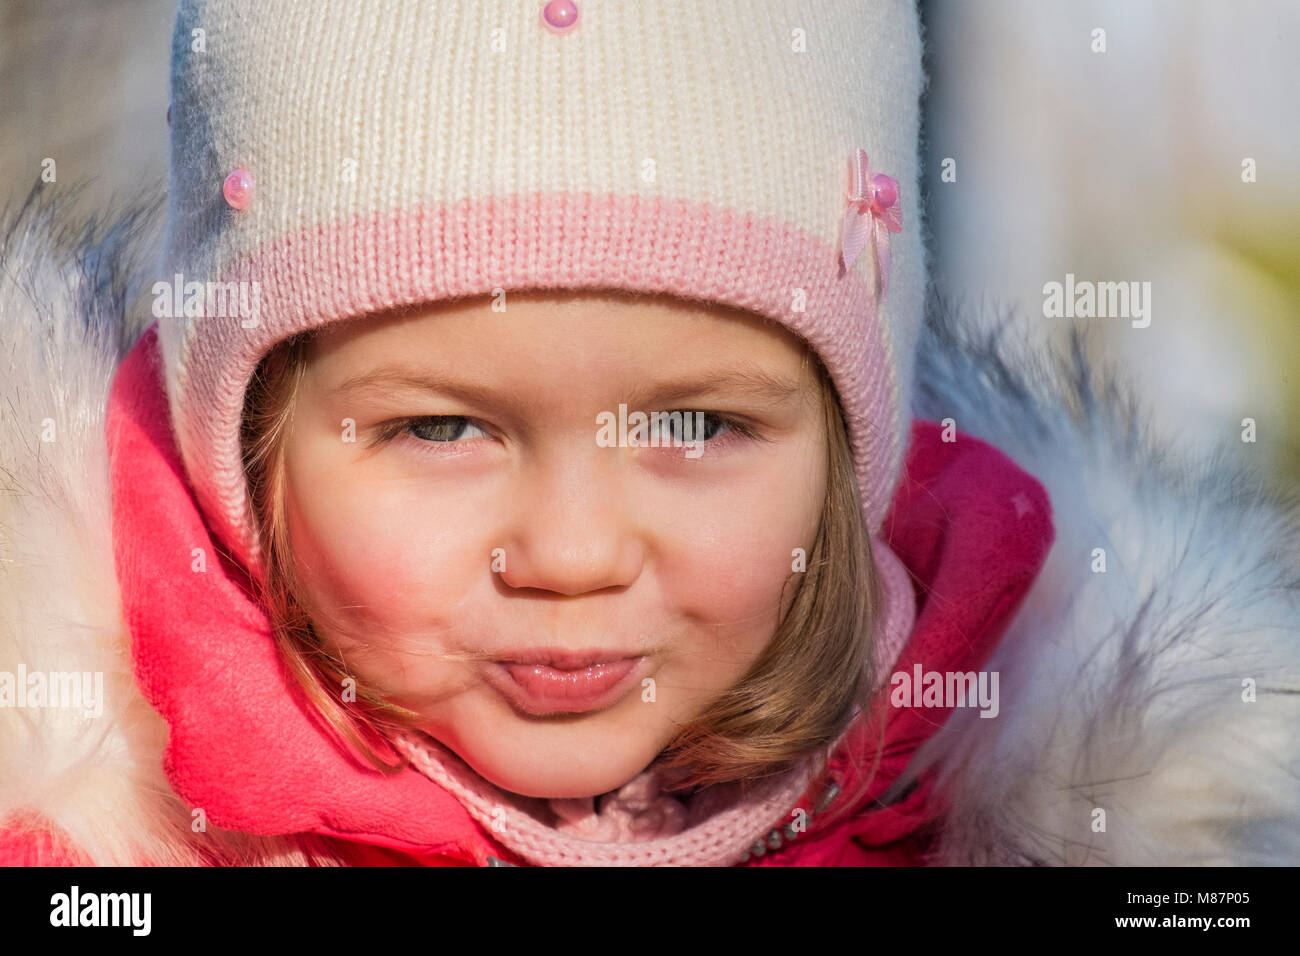 Portrait of a little girl in winter clothes - Stock Image